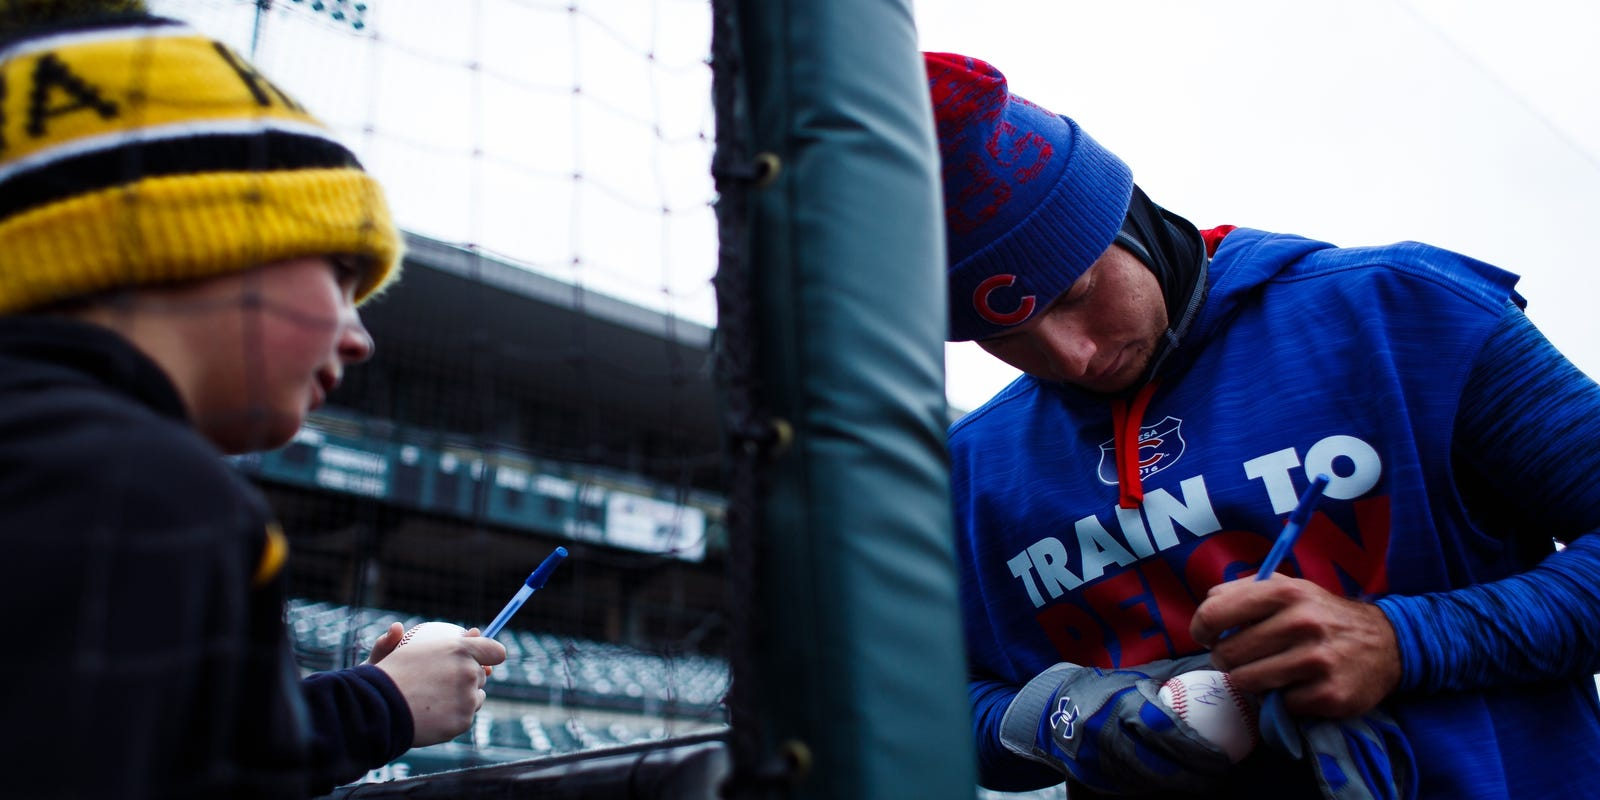 Icubs 2020 Schedule Iowa Cubs to extend netting to foul poles